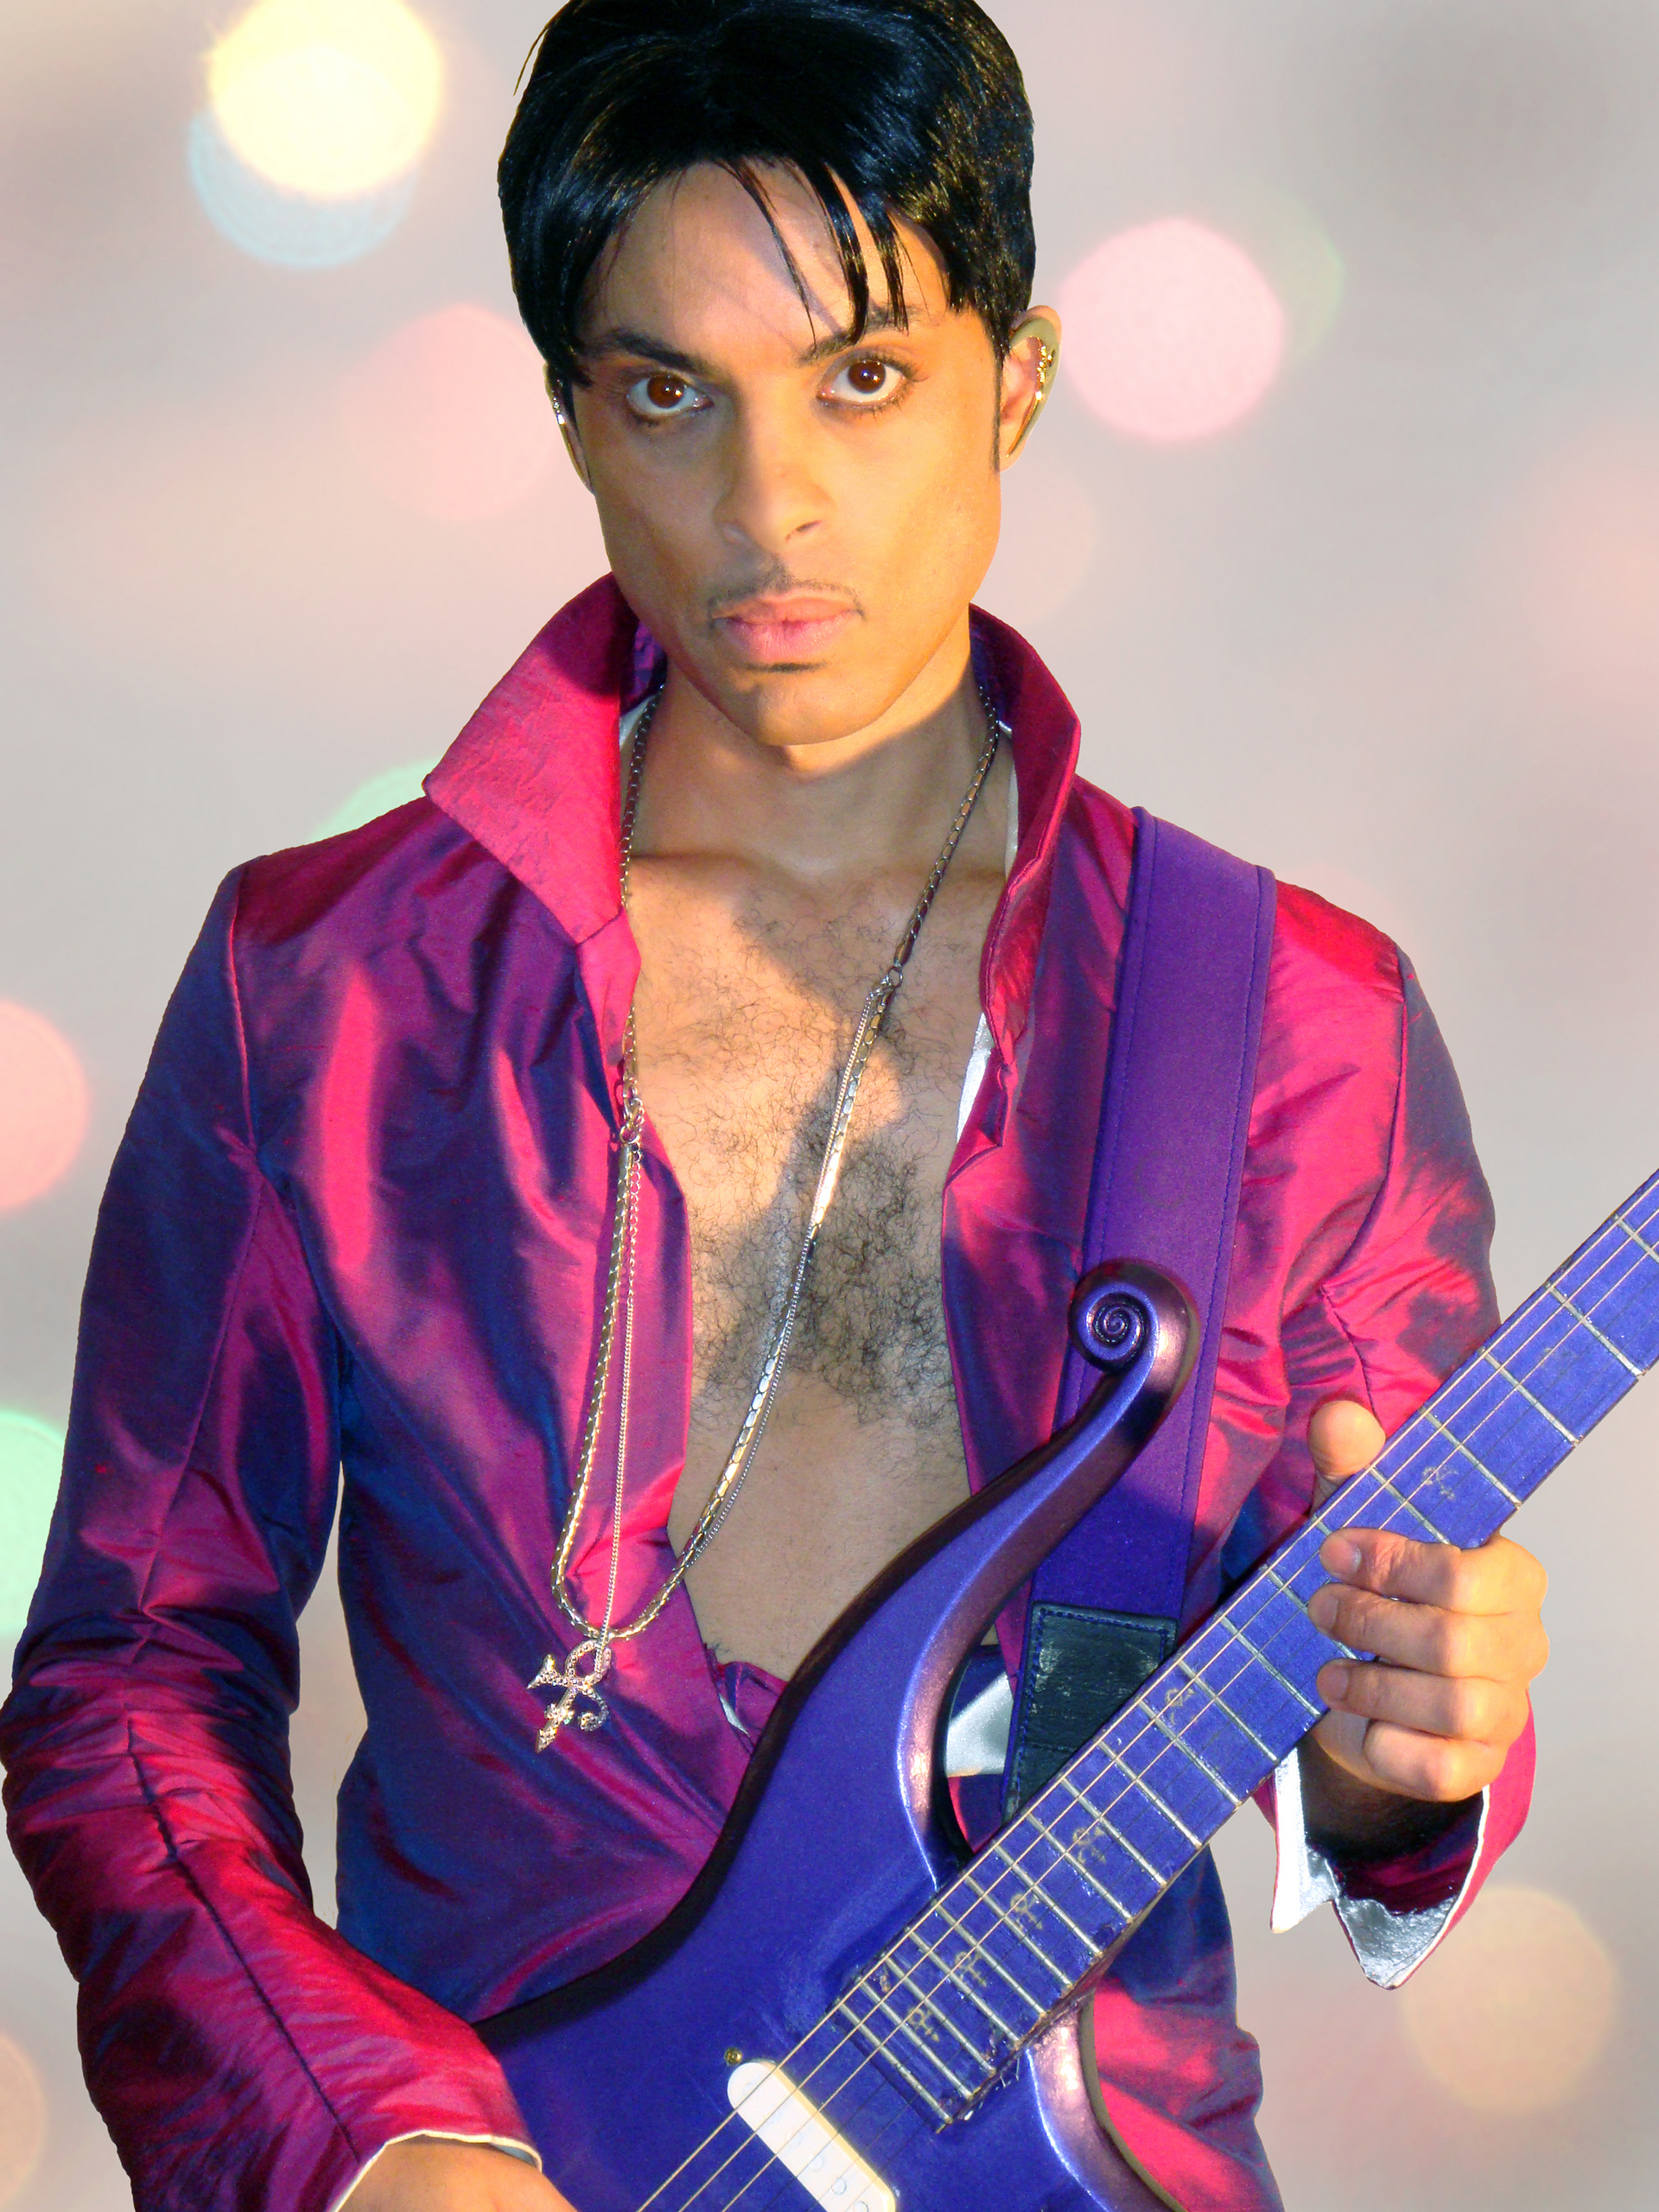 Les différents visages de chaque type... Who-is-this-guy-looks-like-Prince-prince-10580798-1920-2560